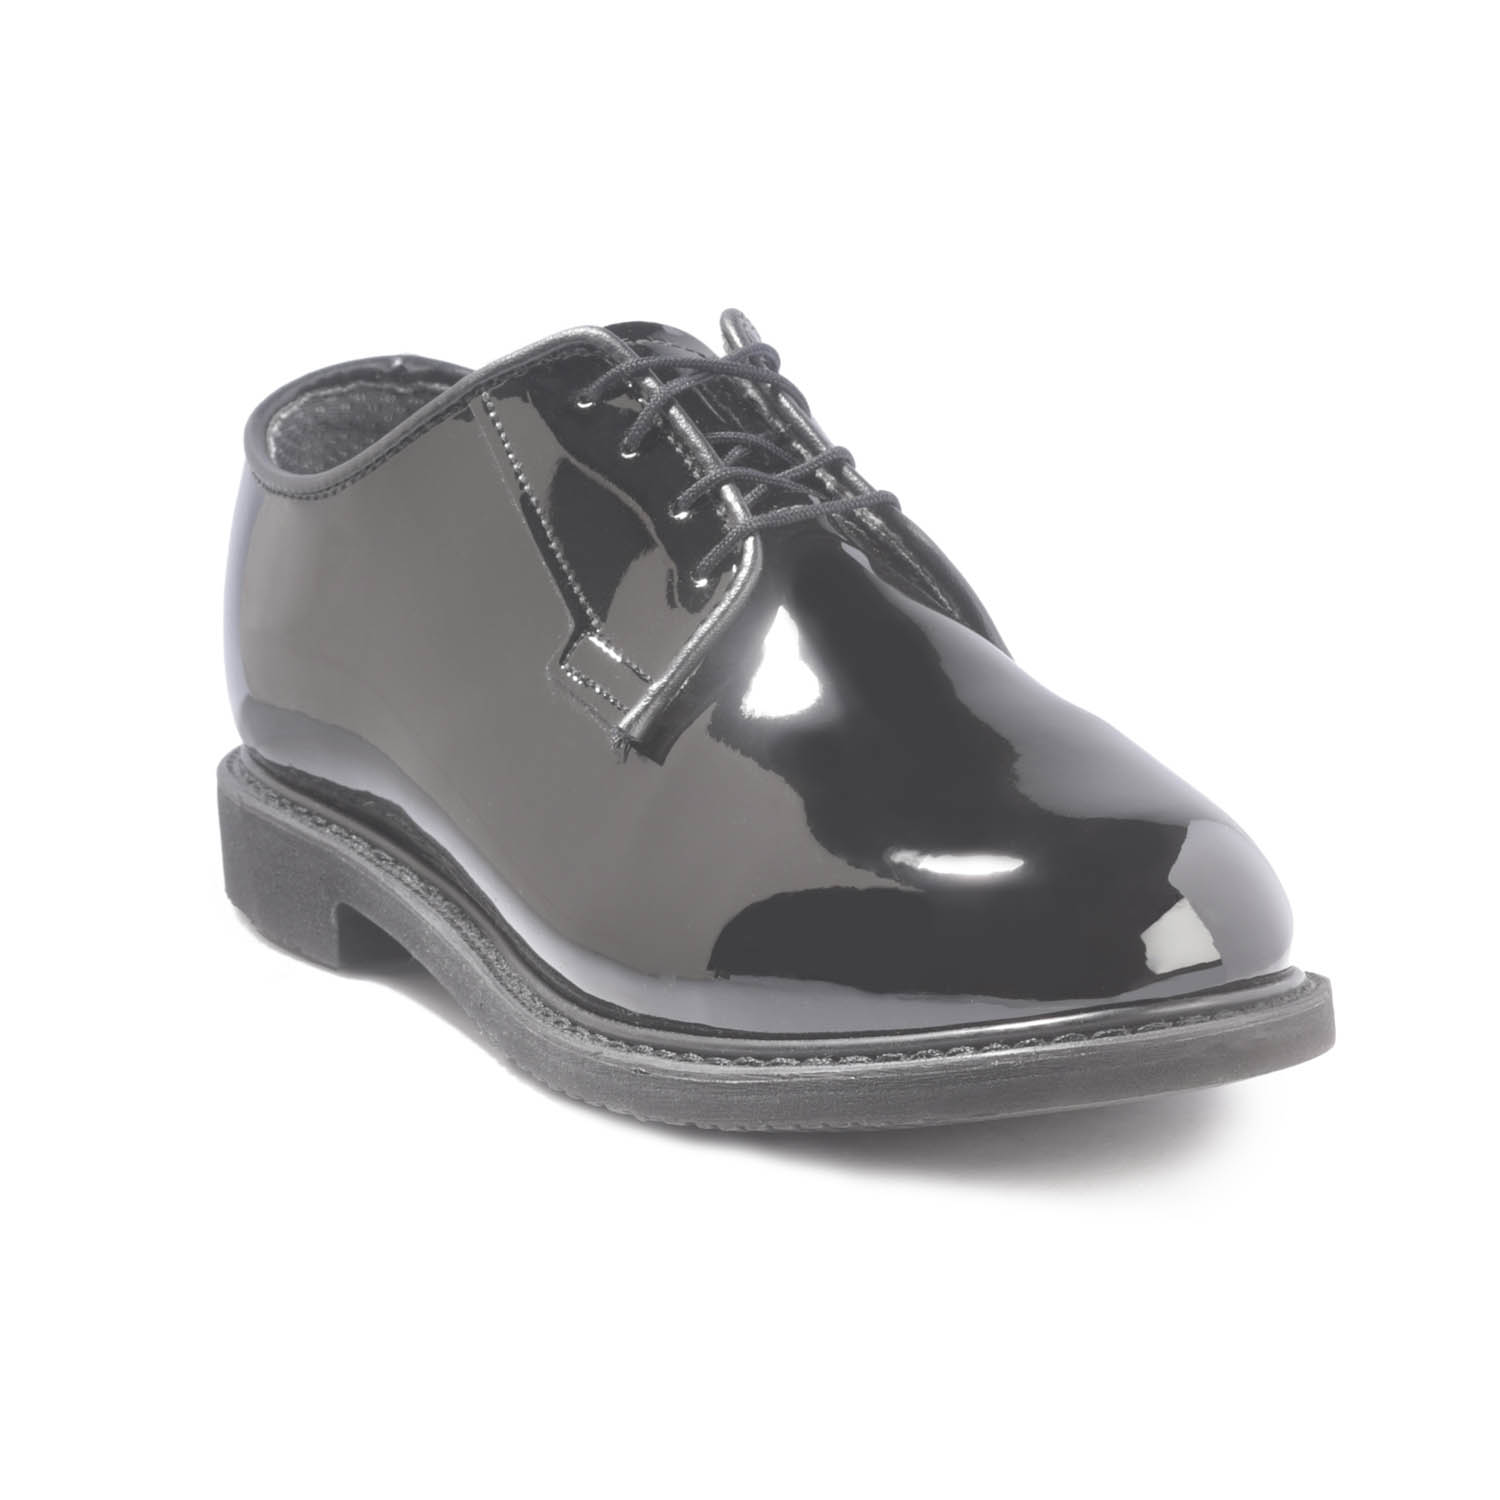 Bates Women's Lites Black Hi-Gloss Oxford